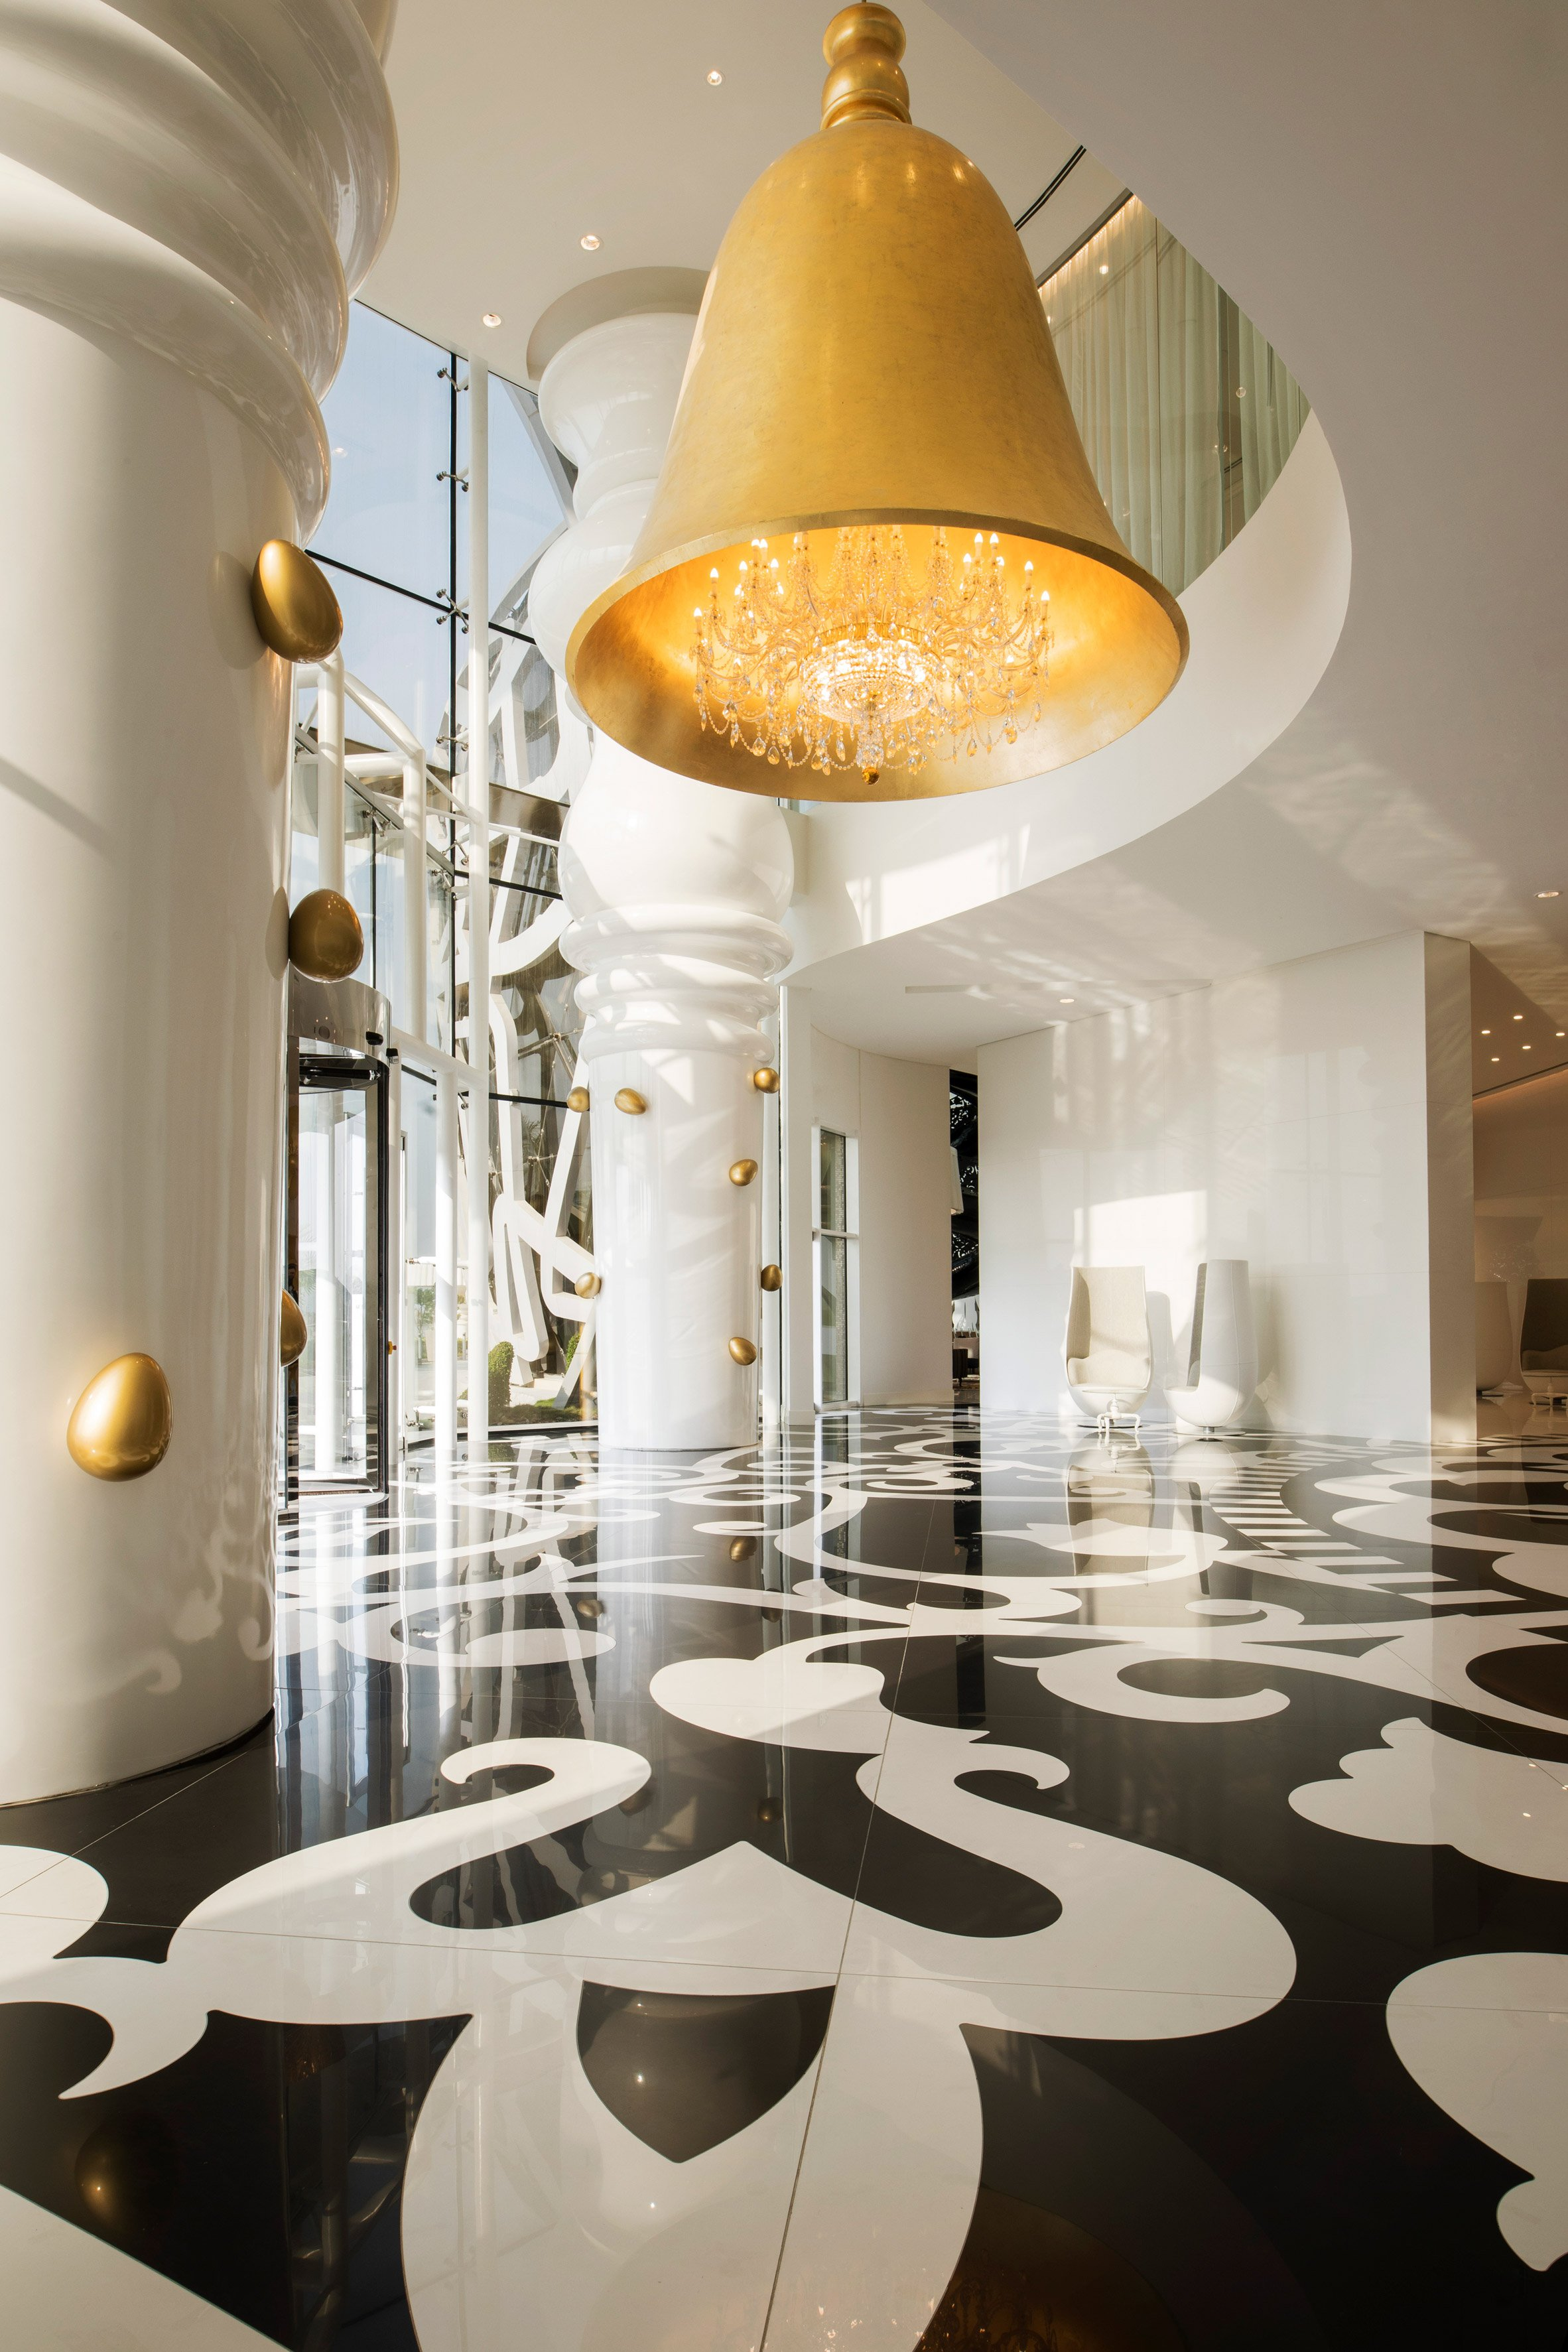 Marcel Wanders uses mismatched patterns and oversized furnishings for Doha hotel